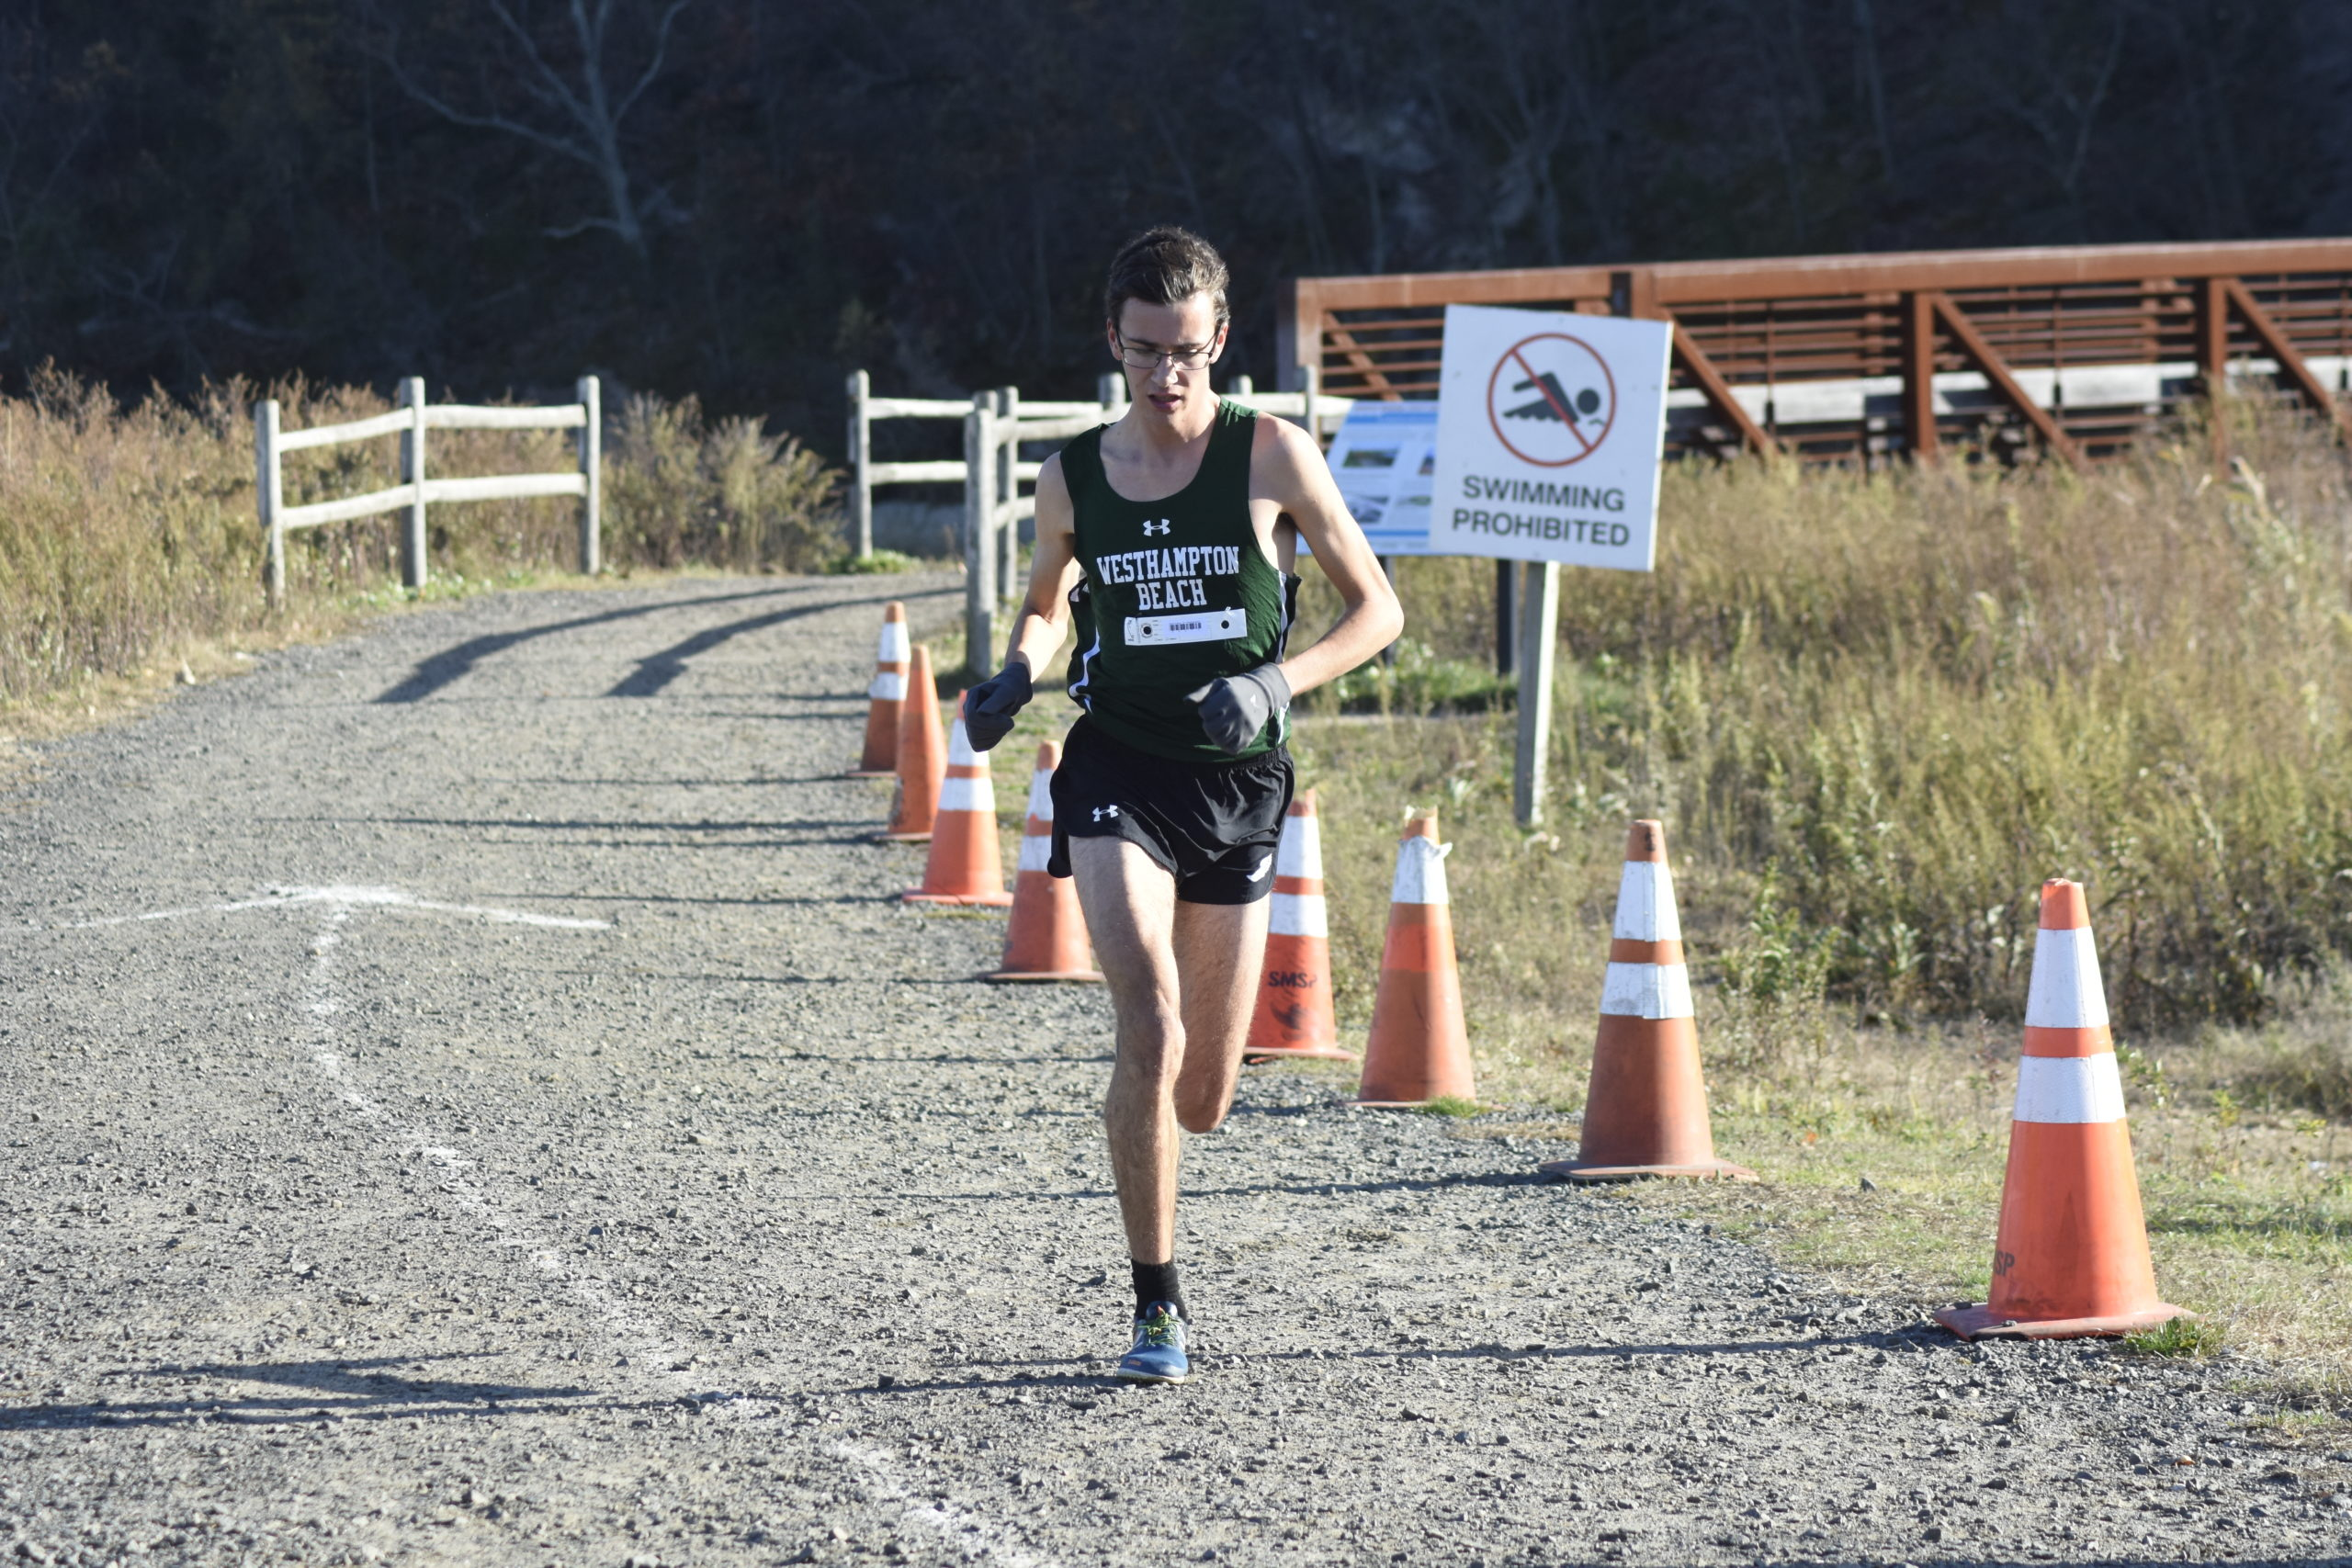 Gavin Ehlers is entering his senior season and will be one of the top runners in Suffolk this fall.